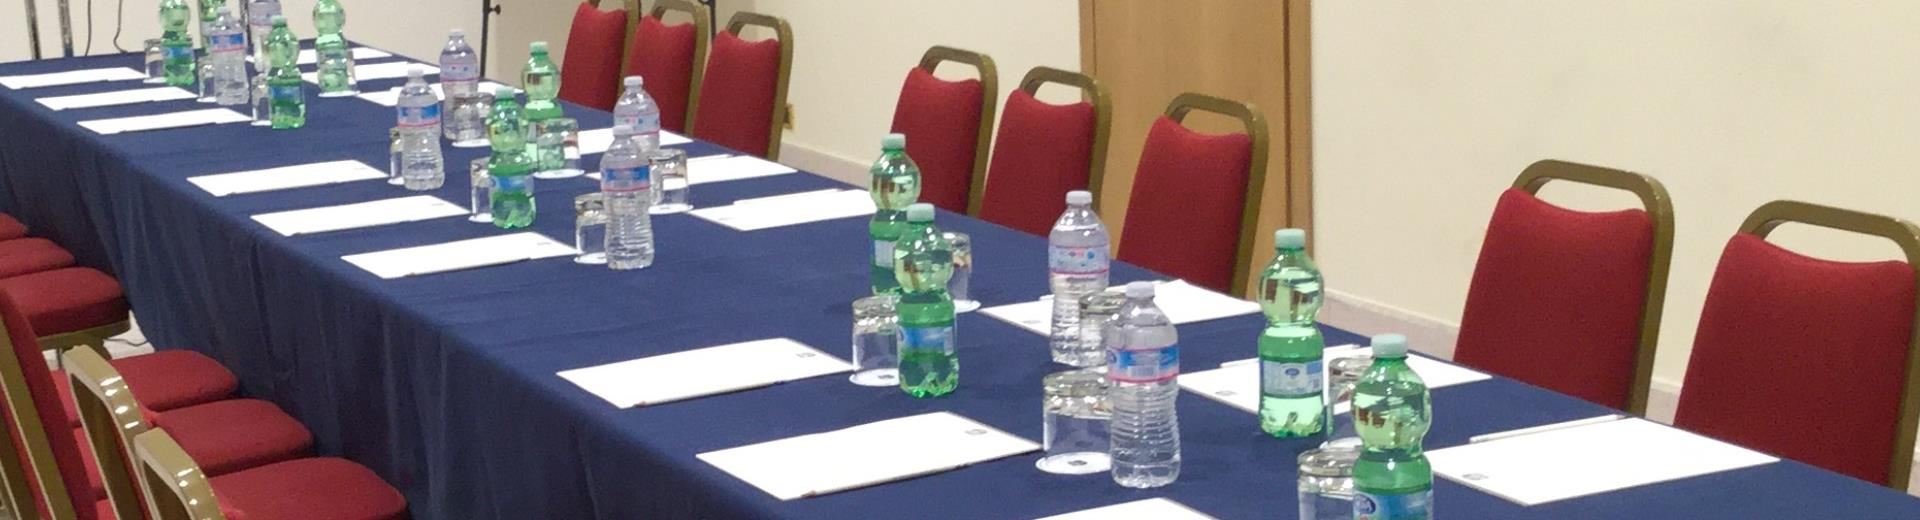 Meeting rooms and business services in Bergamo at BW Hotel Cappello d''Oro